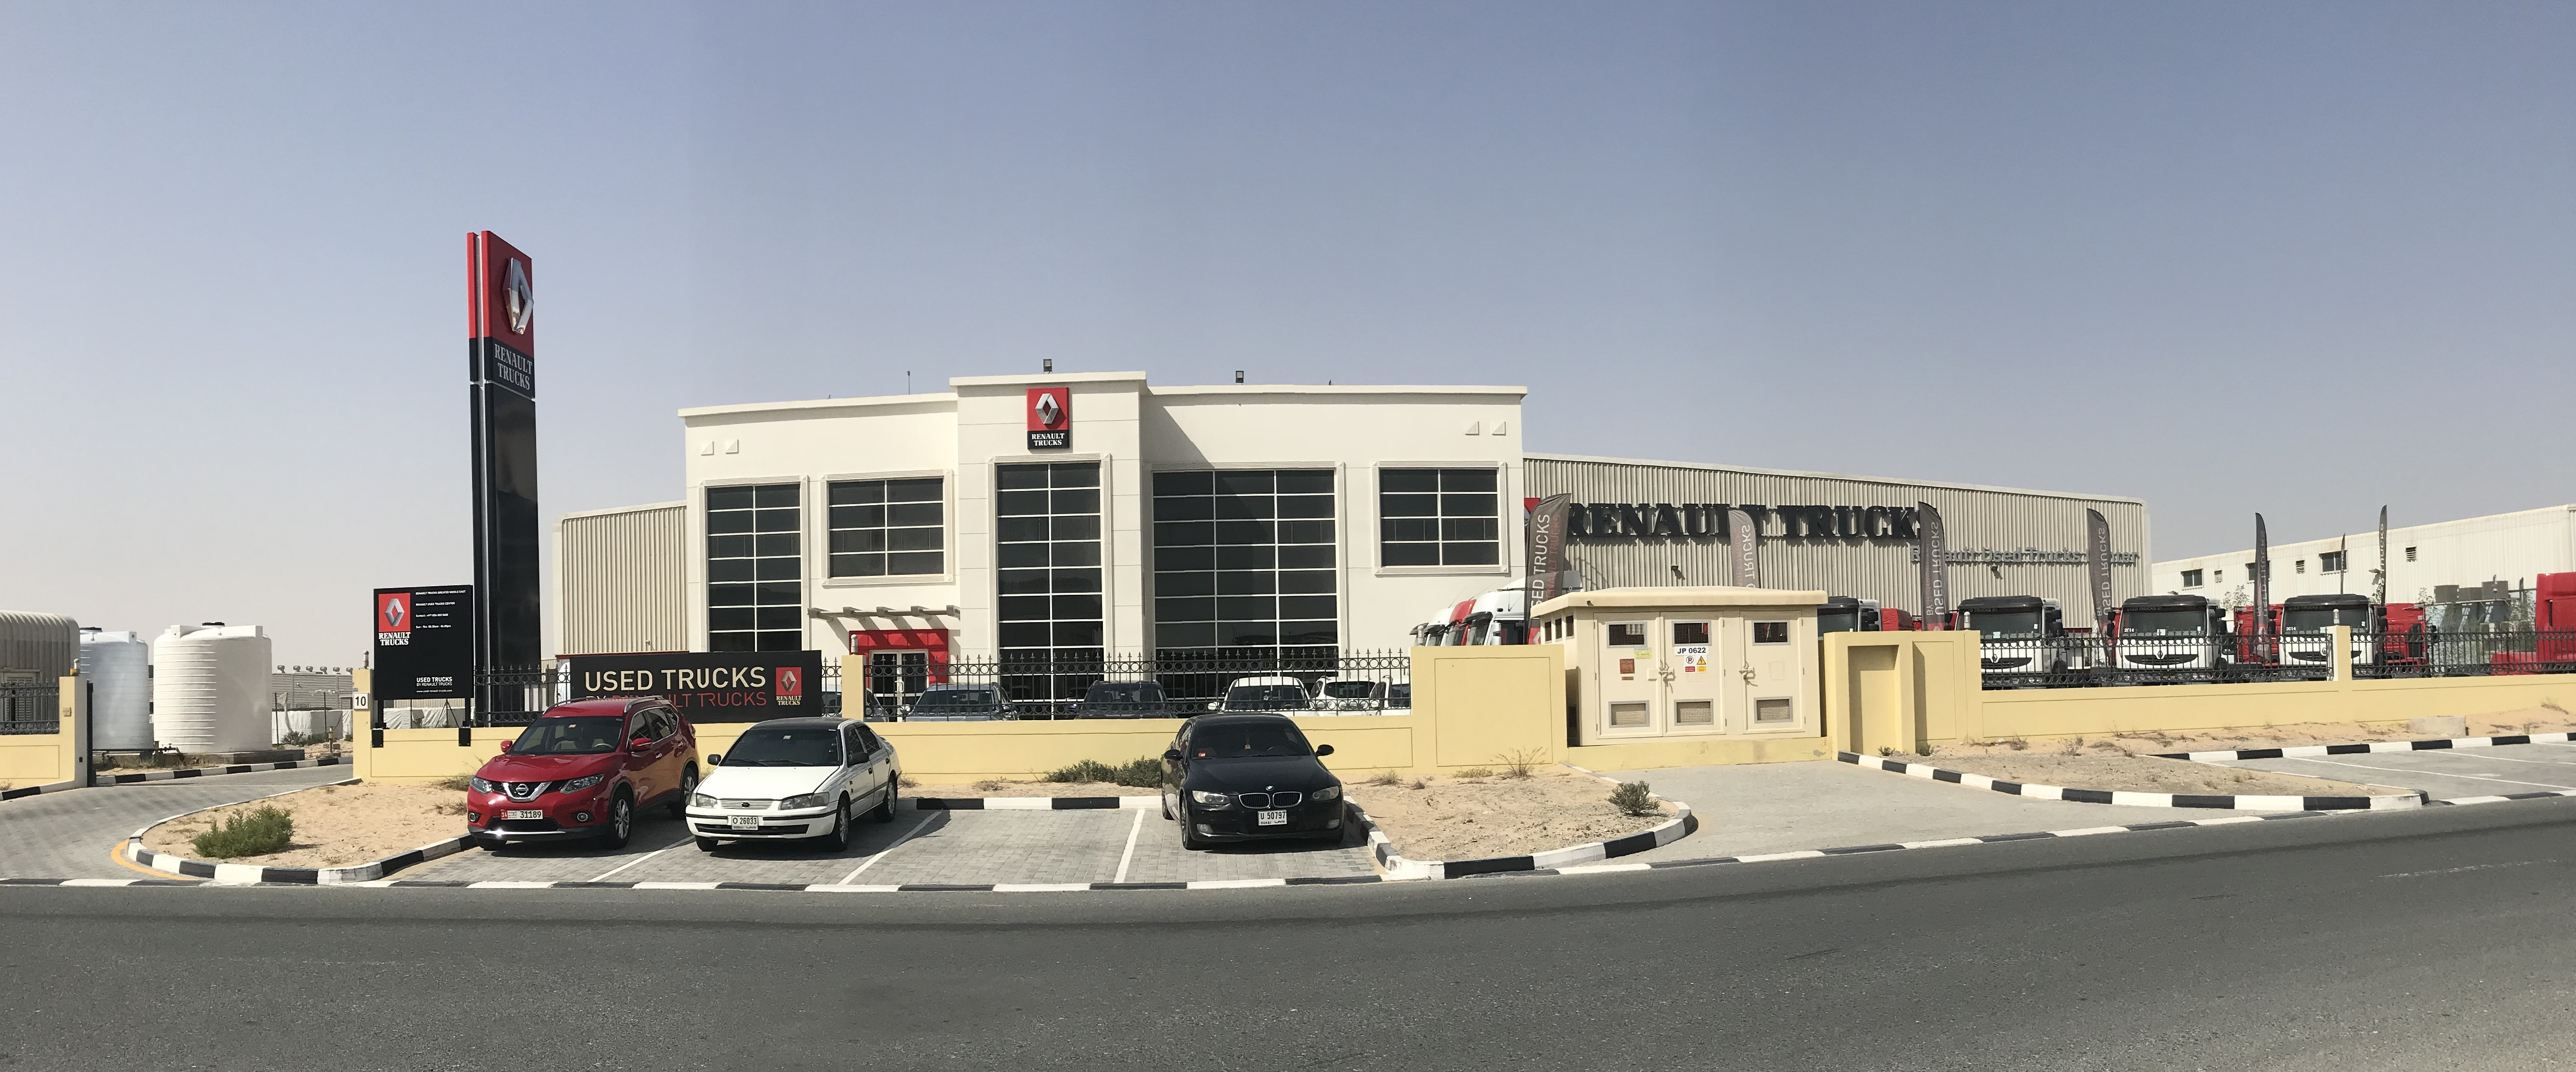 Renault Trucks Used Trucks Center in Dubai